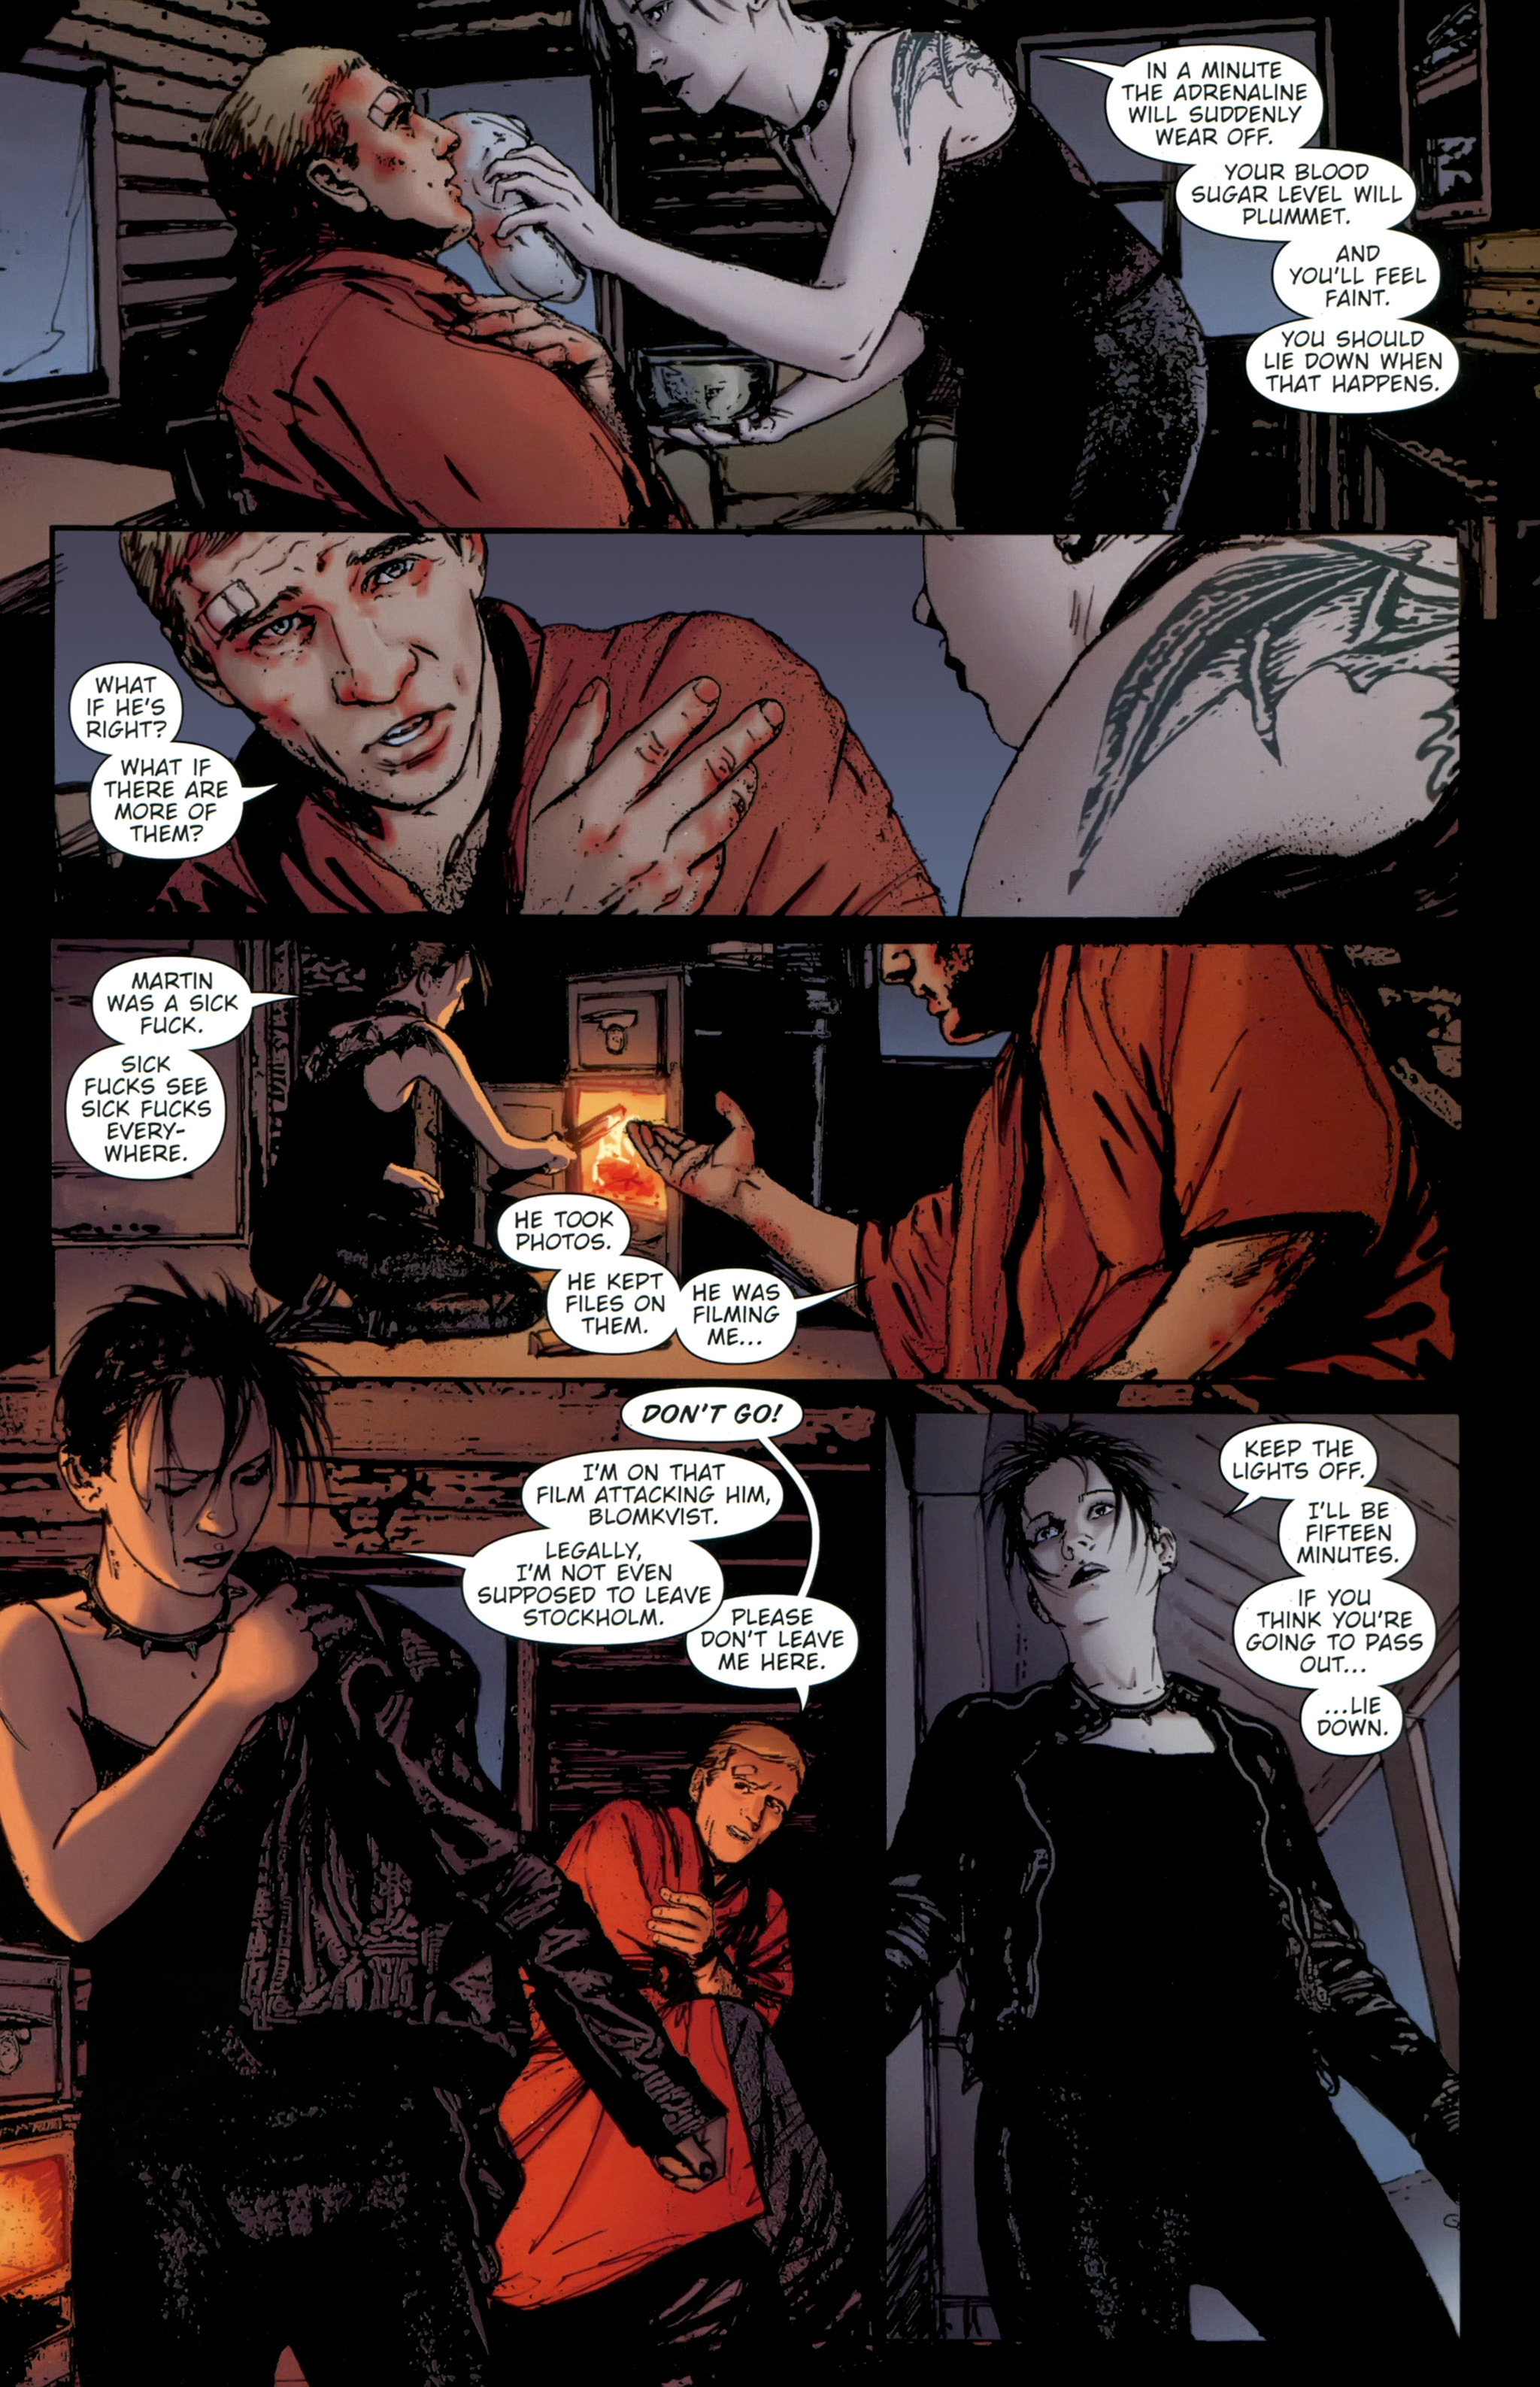 Read online The Girl With the Dragon Tattoo comic -  Issue # TPB 2 - 111